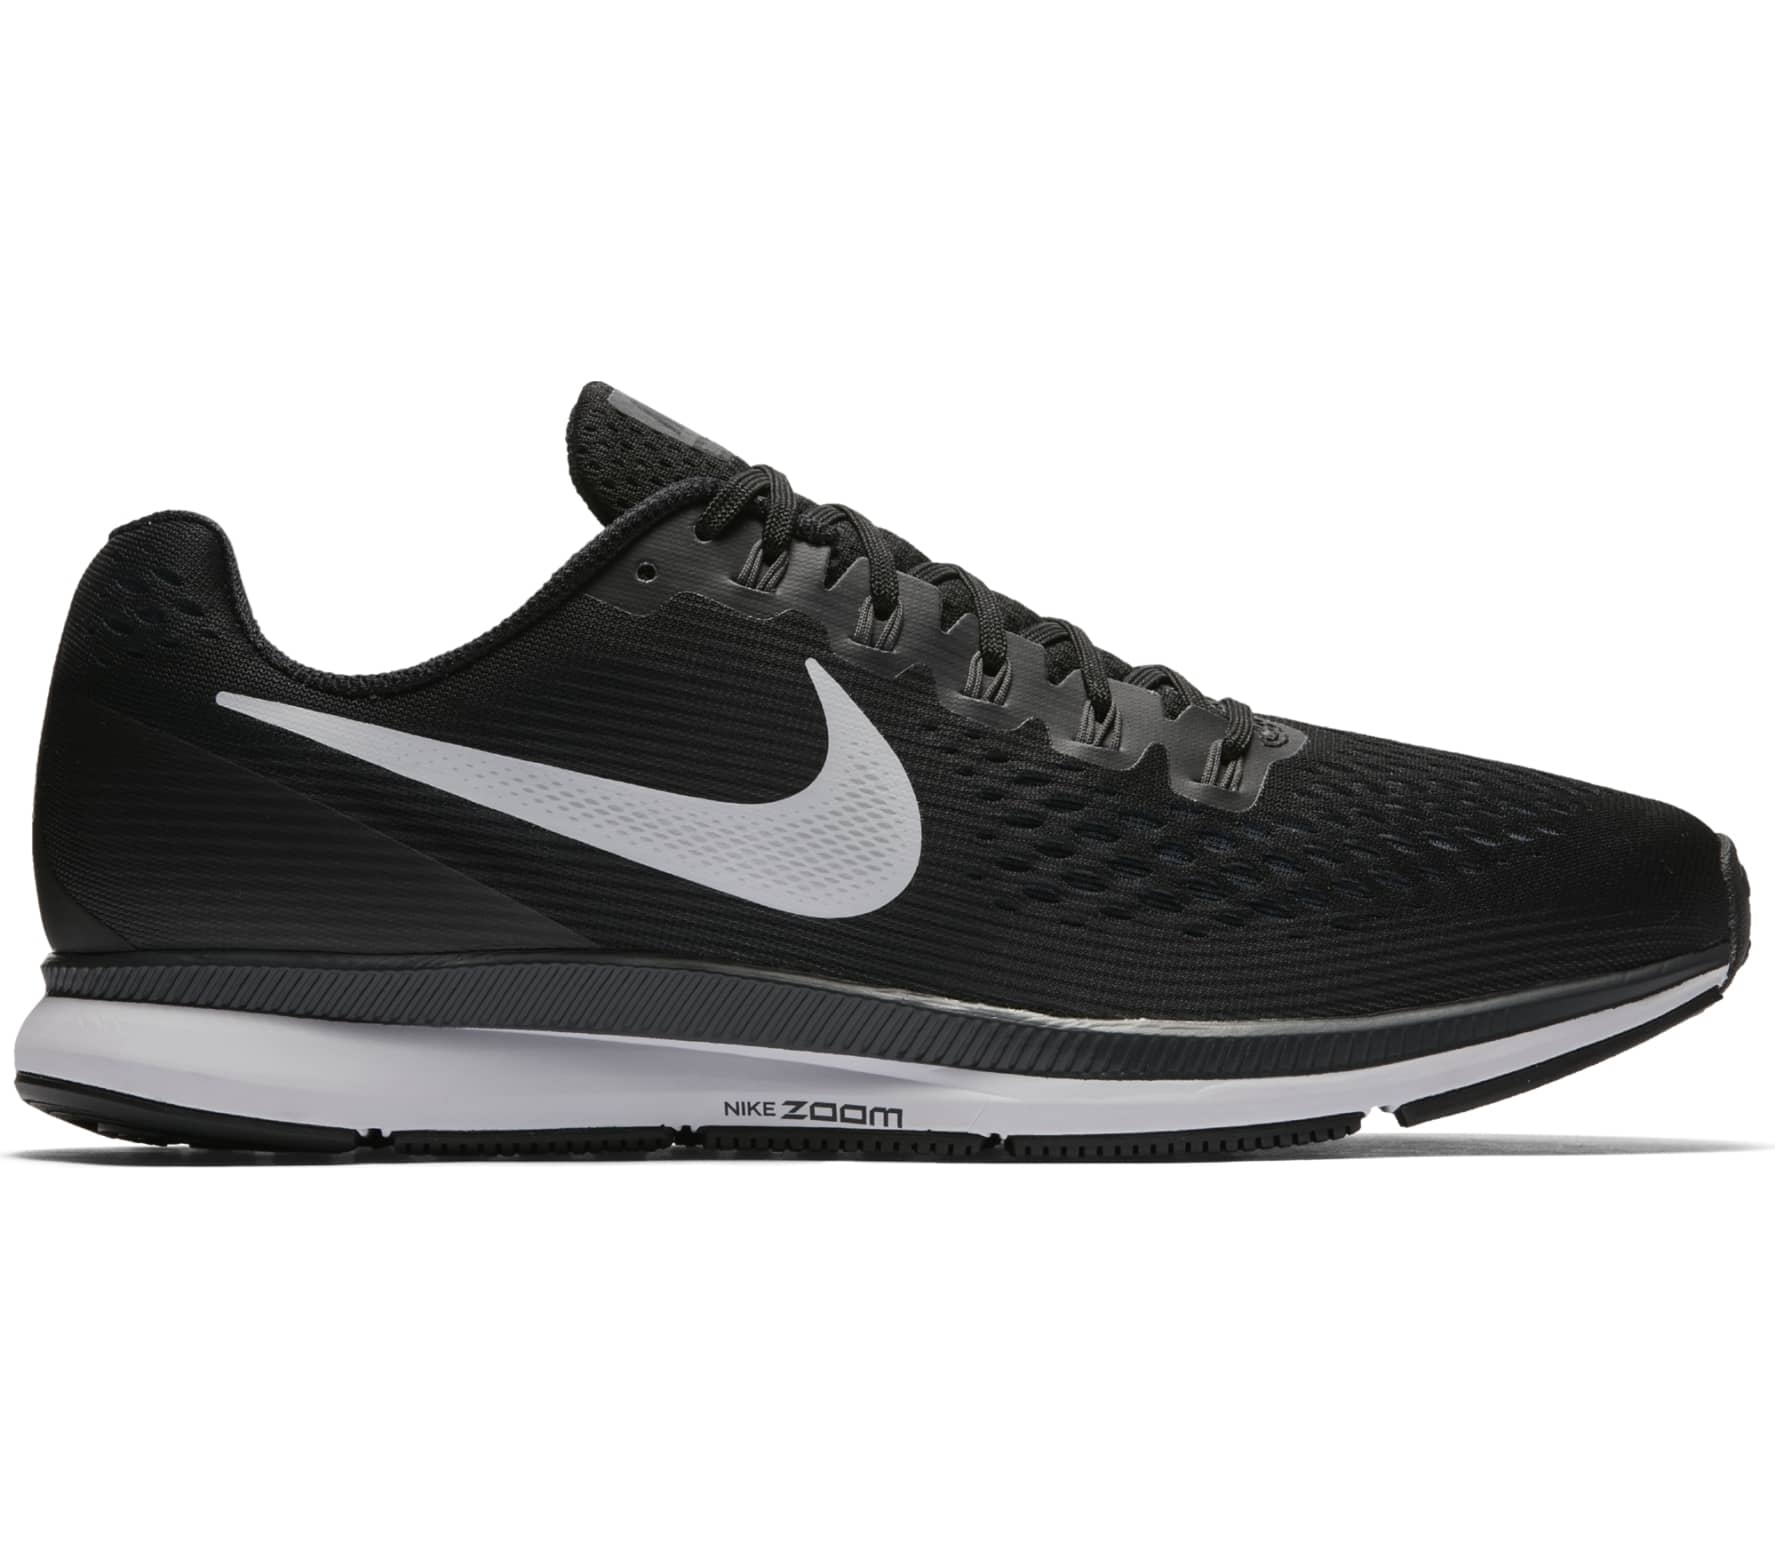 e7f232dbee567 Nike - Air Zoom Pegasus 34 men s running shoes (black white) - buy ...